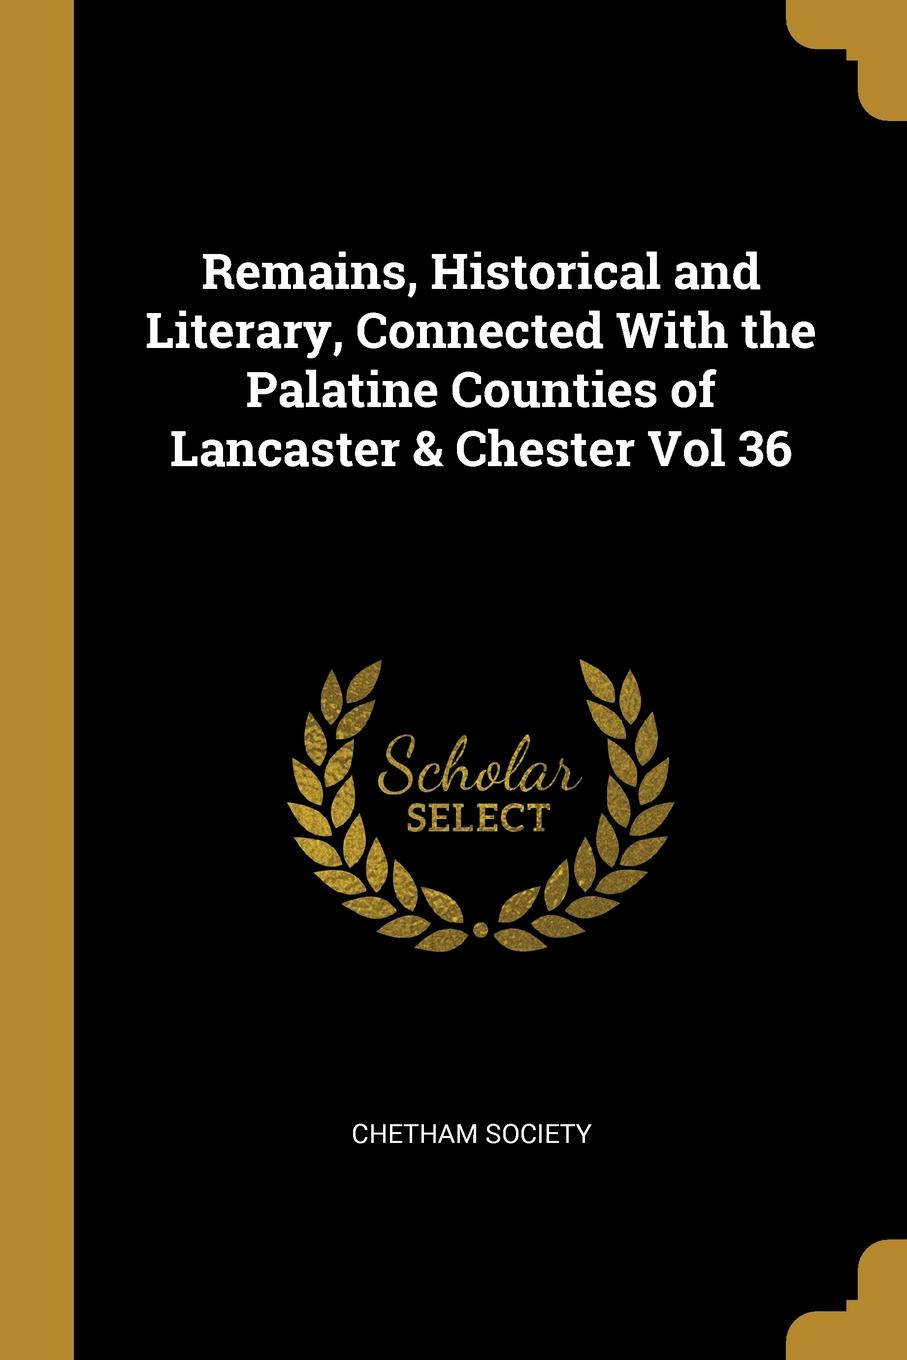 Remains, Historical and Literary, Connected With the Palatine Counties of Lancaster . Chester Vol 36